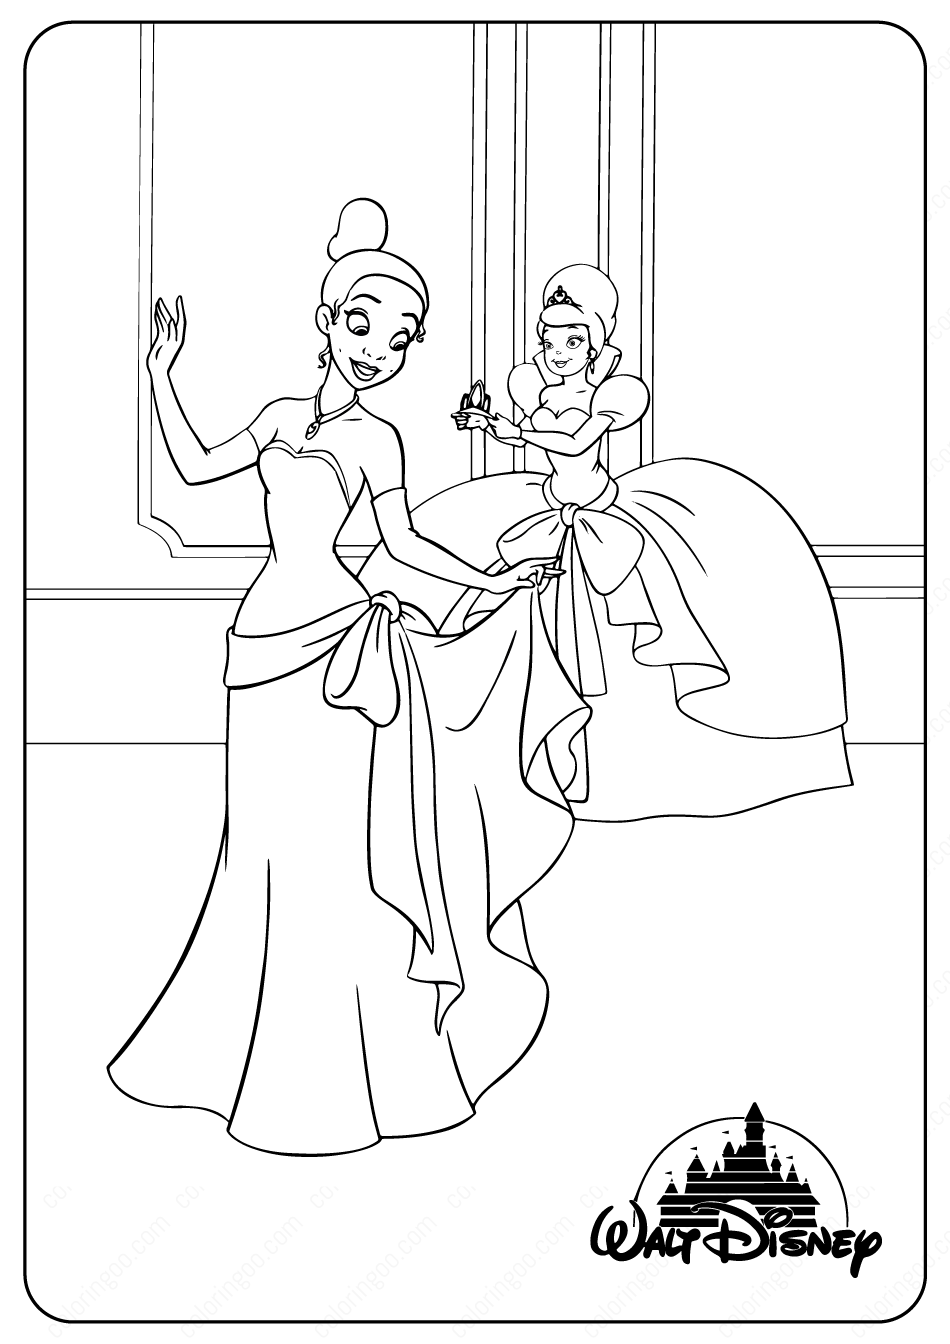 Printable Disney Tiana and Charlotte Coloring Pages